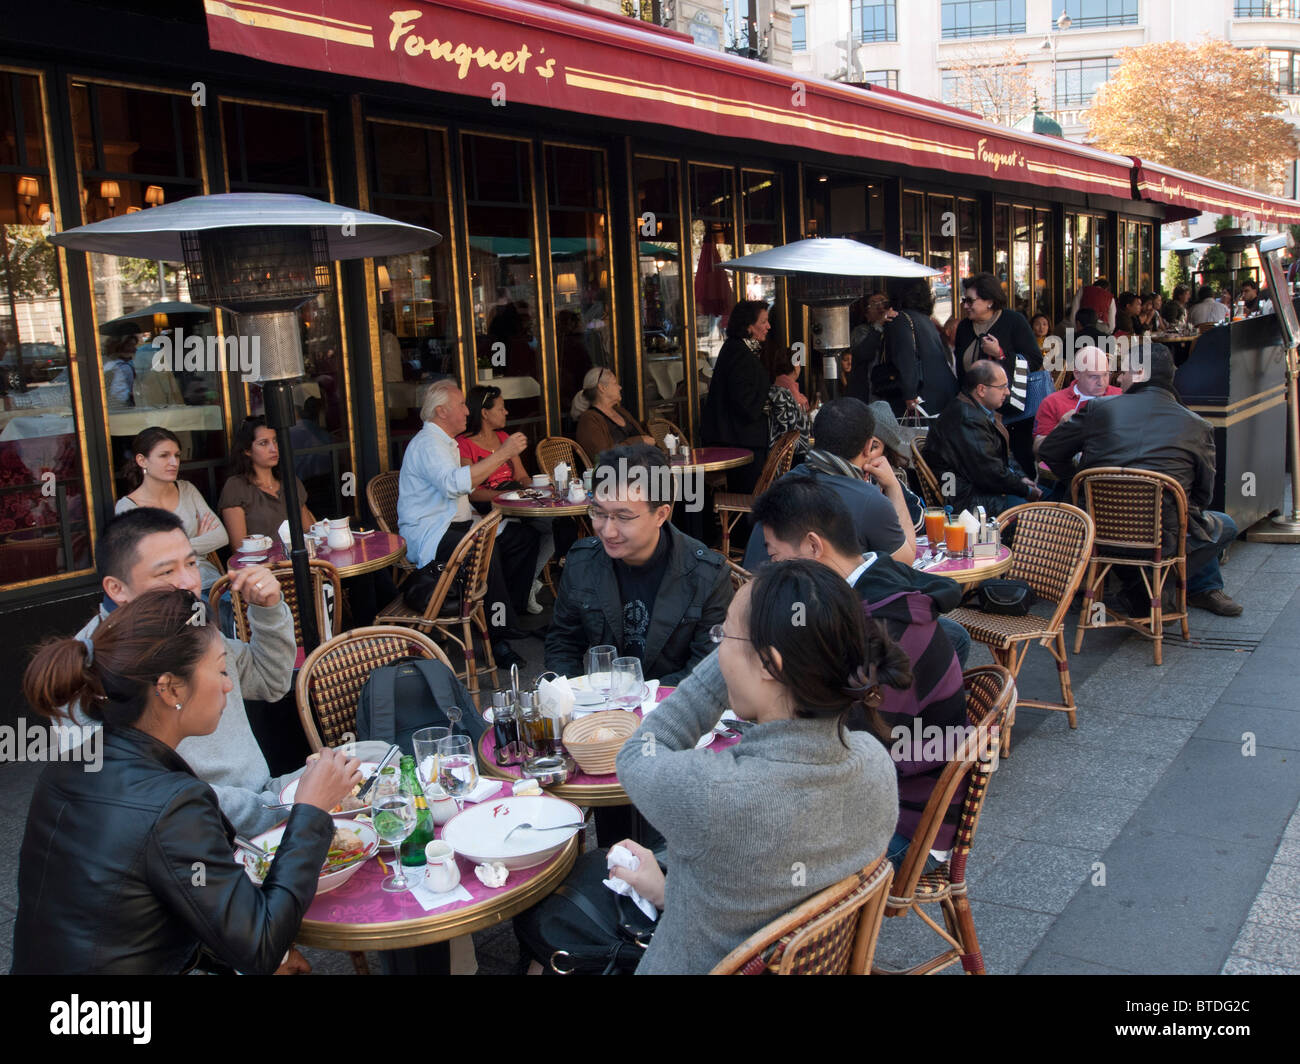 Tourists eating at Fouquet's restaurant on the Champs, Elysees in Paris france - Stock Image